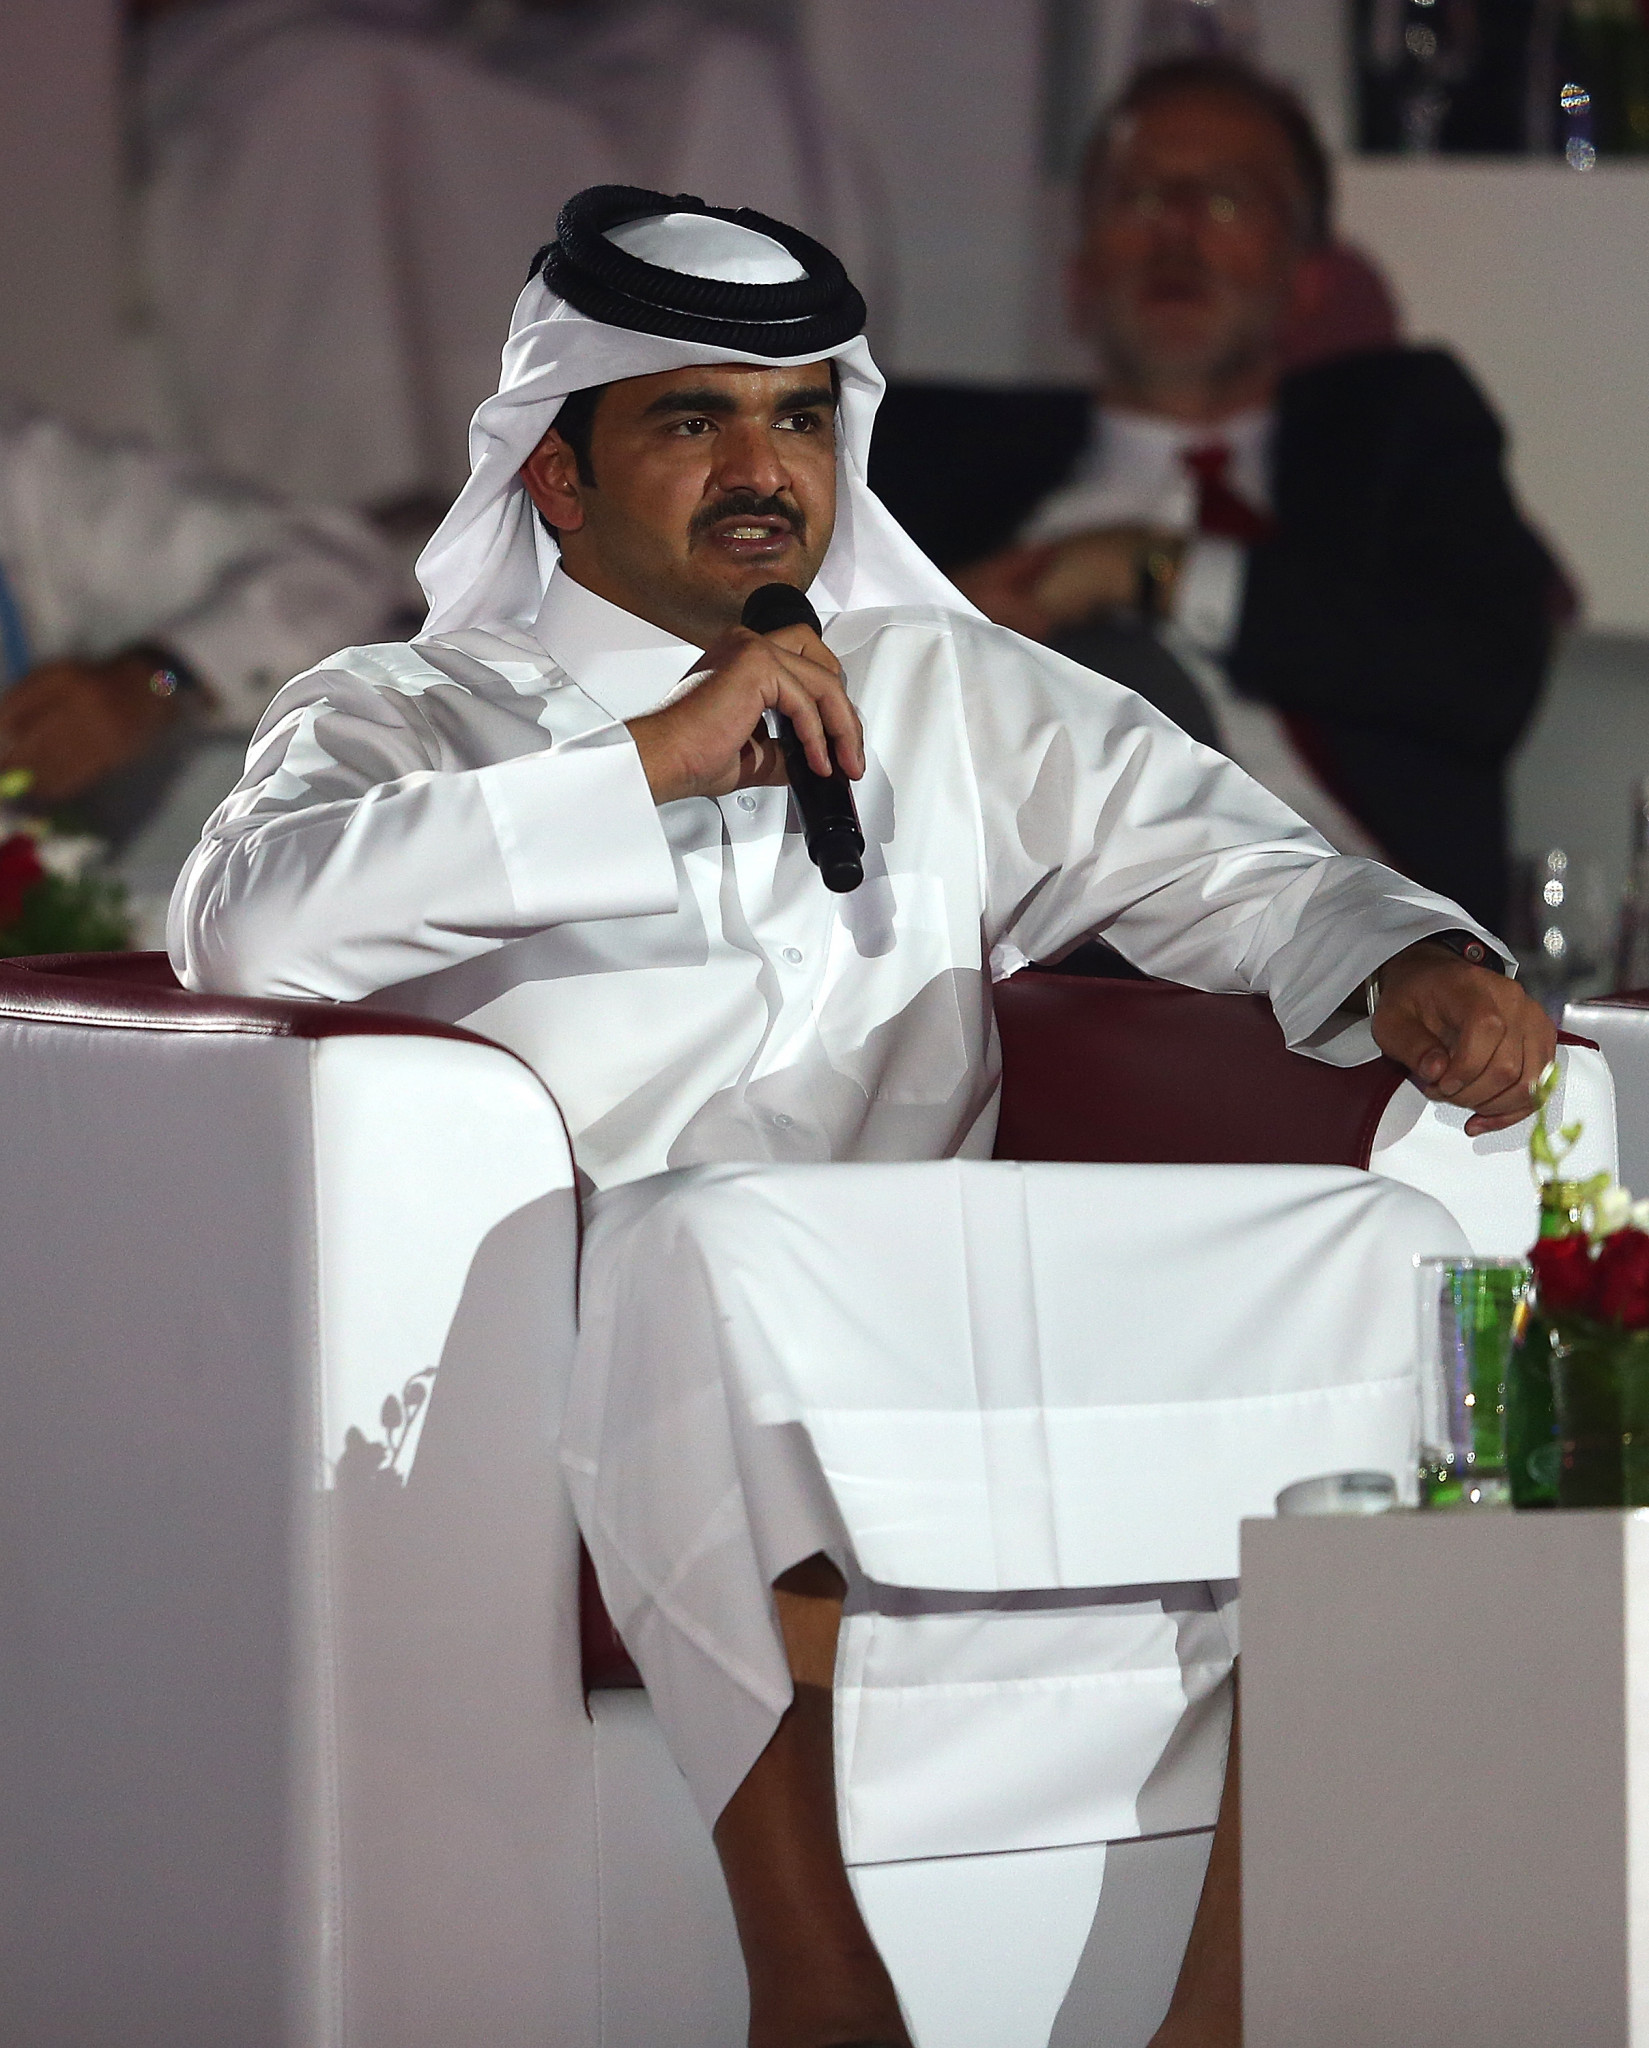 Higher Organising Committee formed for 2019 ANOC World Beach Games in Qatar